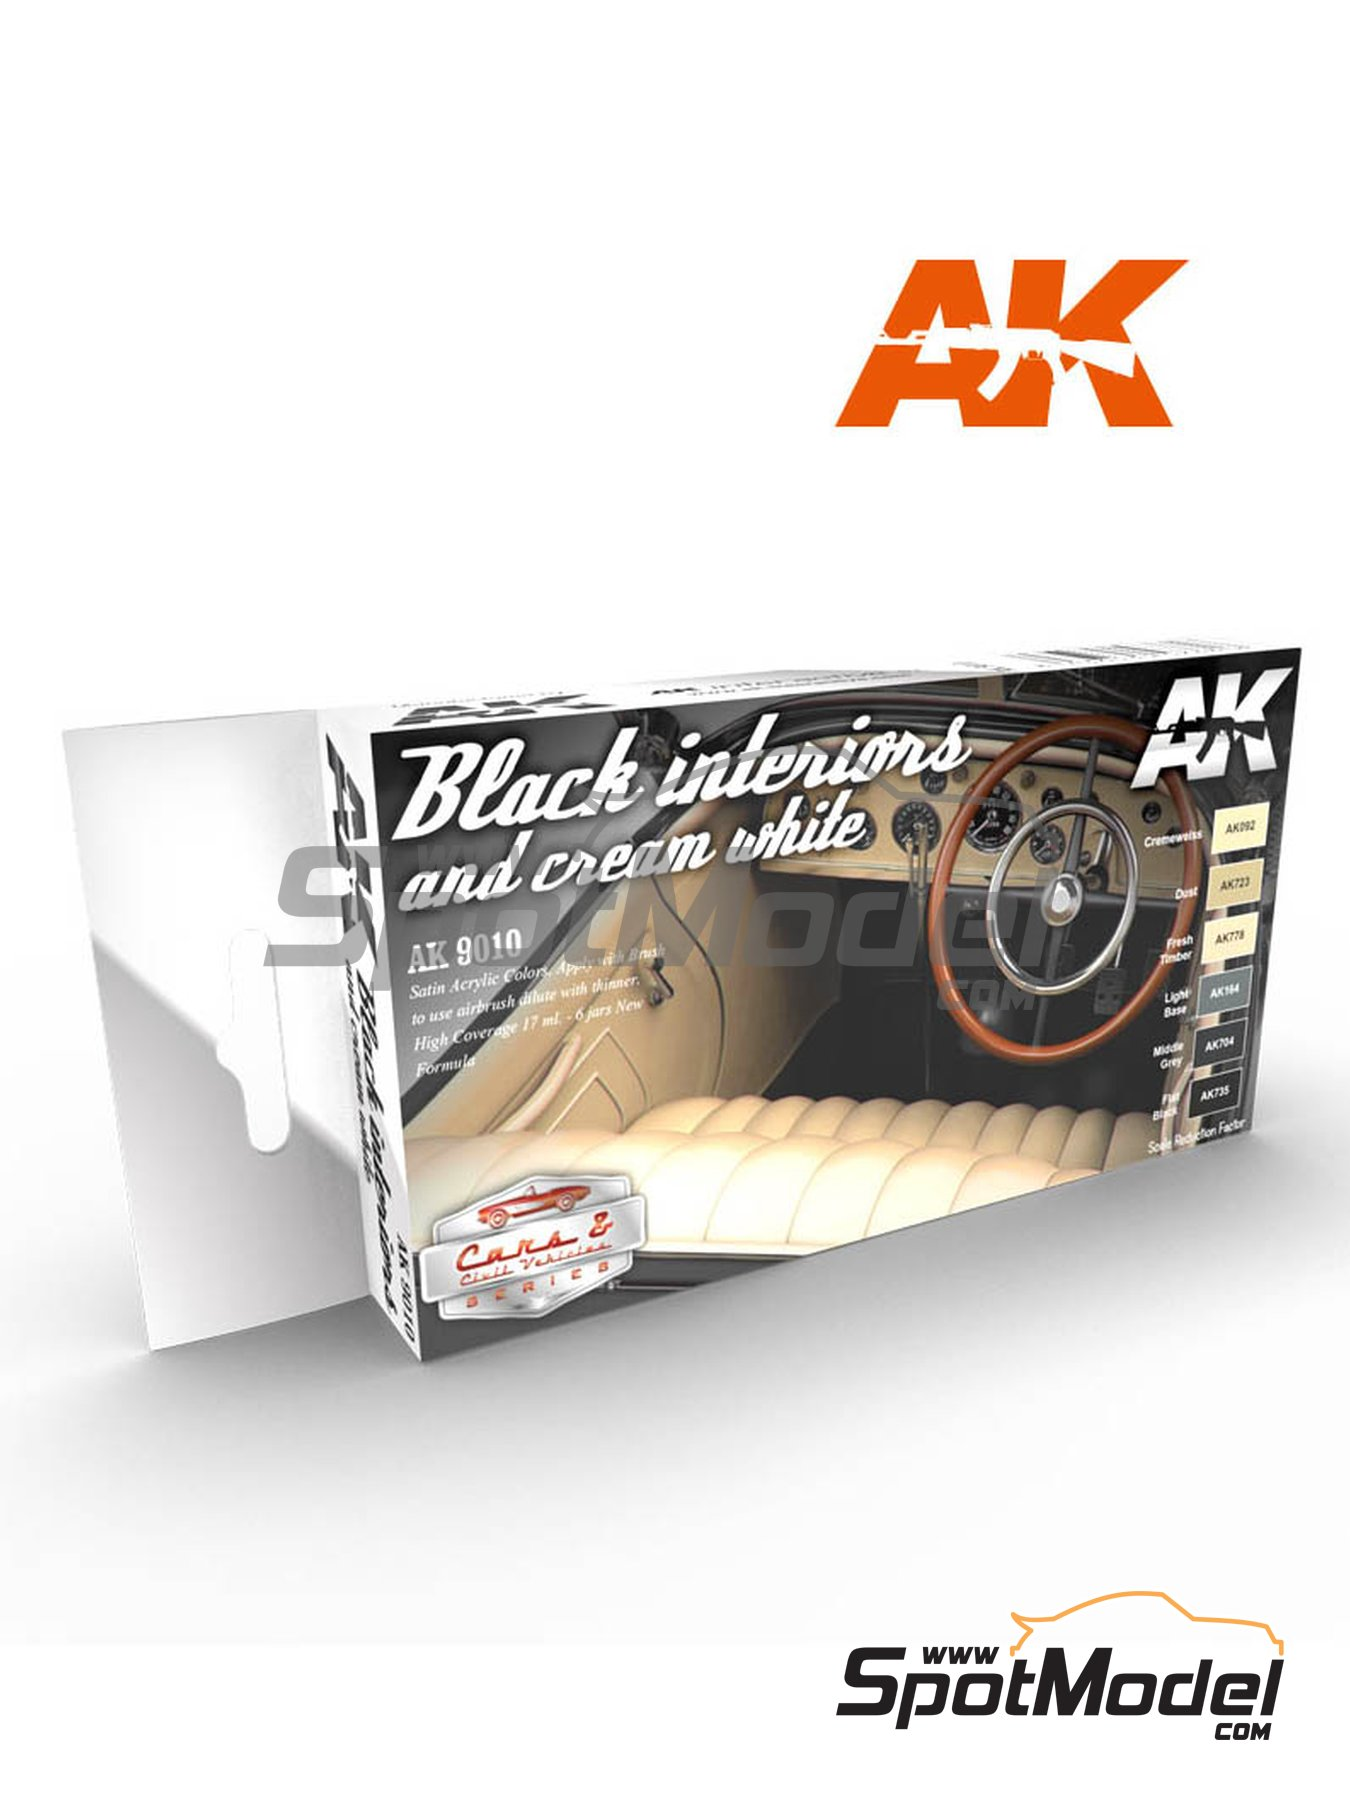 Black and cream white interiors | Paints set manufactured by AK Interactive (ref. AK9010) image